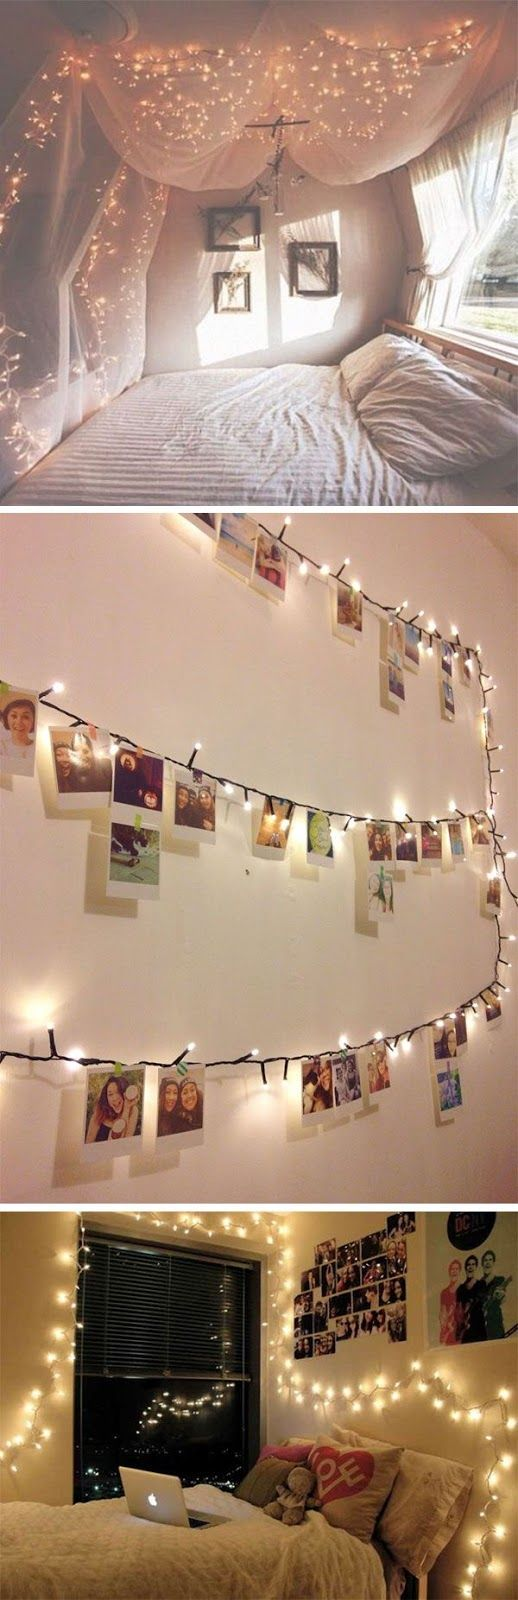 Simply Awesome : 13 ways to use fairy lights to make your home look magical -- the idea but not the execution